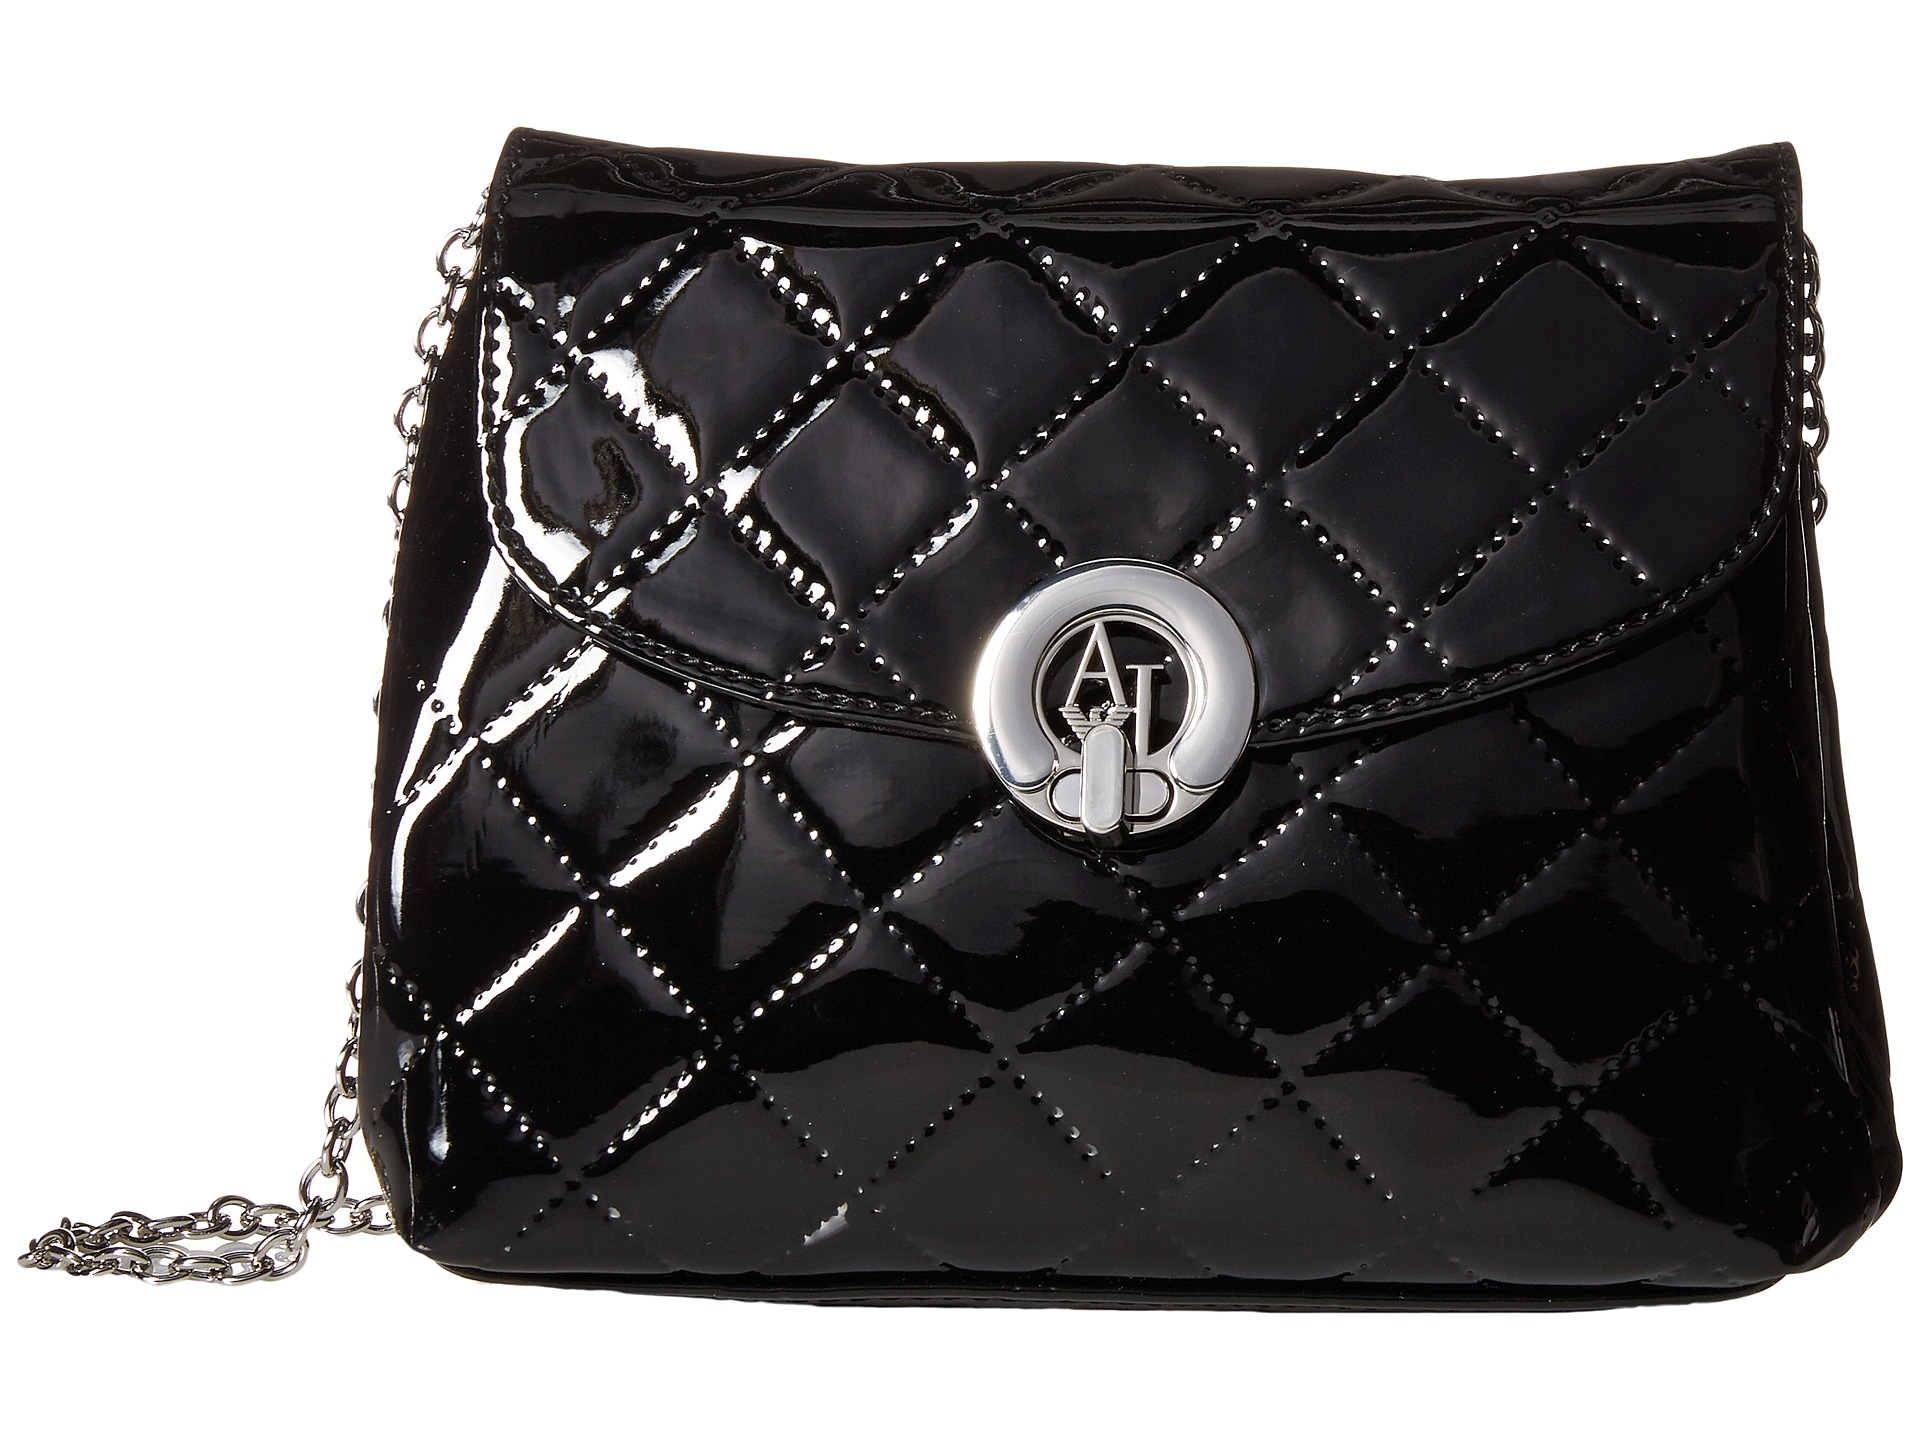 Lyst - Armani Jeans Quilted Patent Crossbody in Black 02dbfc01c7974